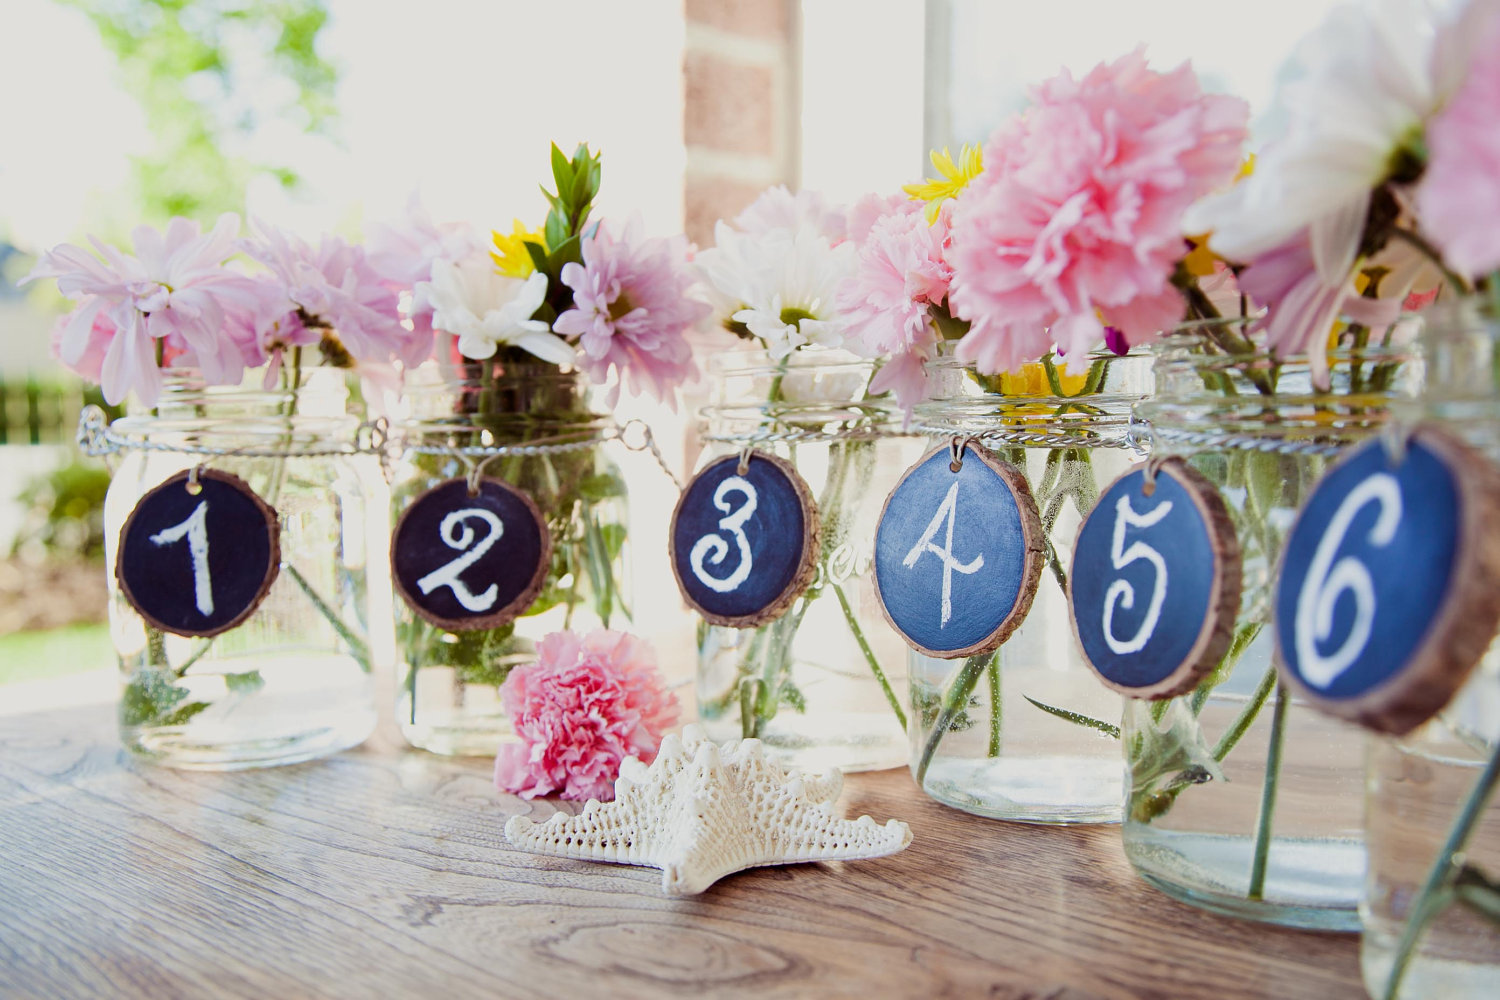 Wedding Table Decorations Using Mason Jars - Table Designs